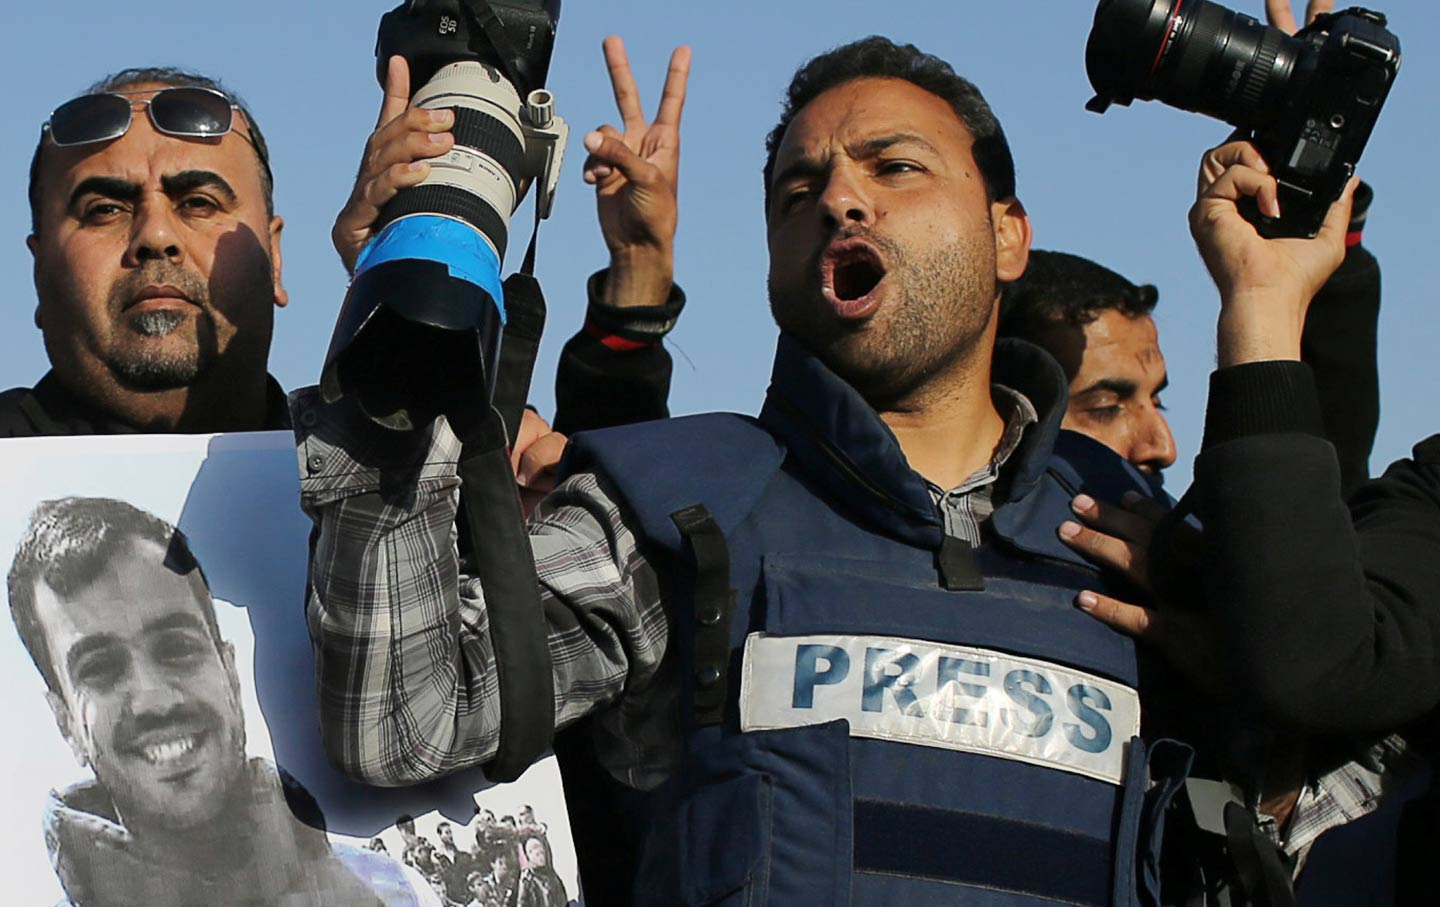 gaza-journalists-target-of-israeli-snipers-–-global-research